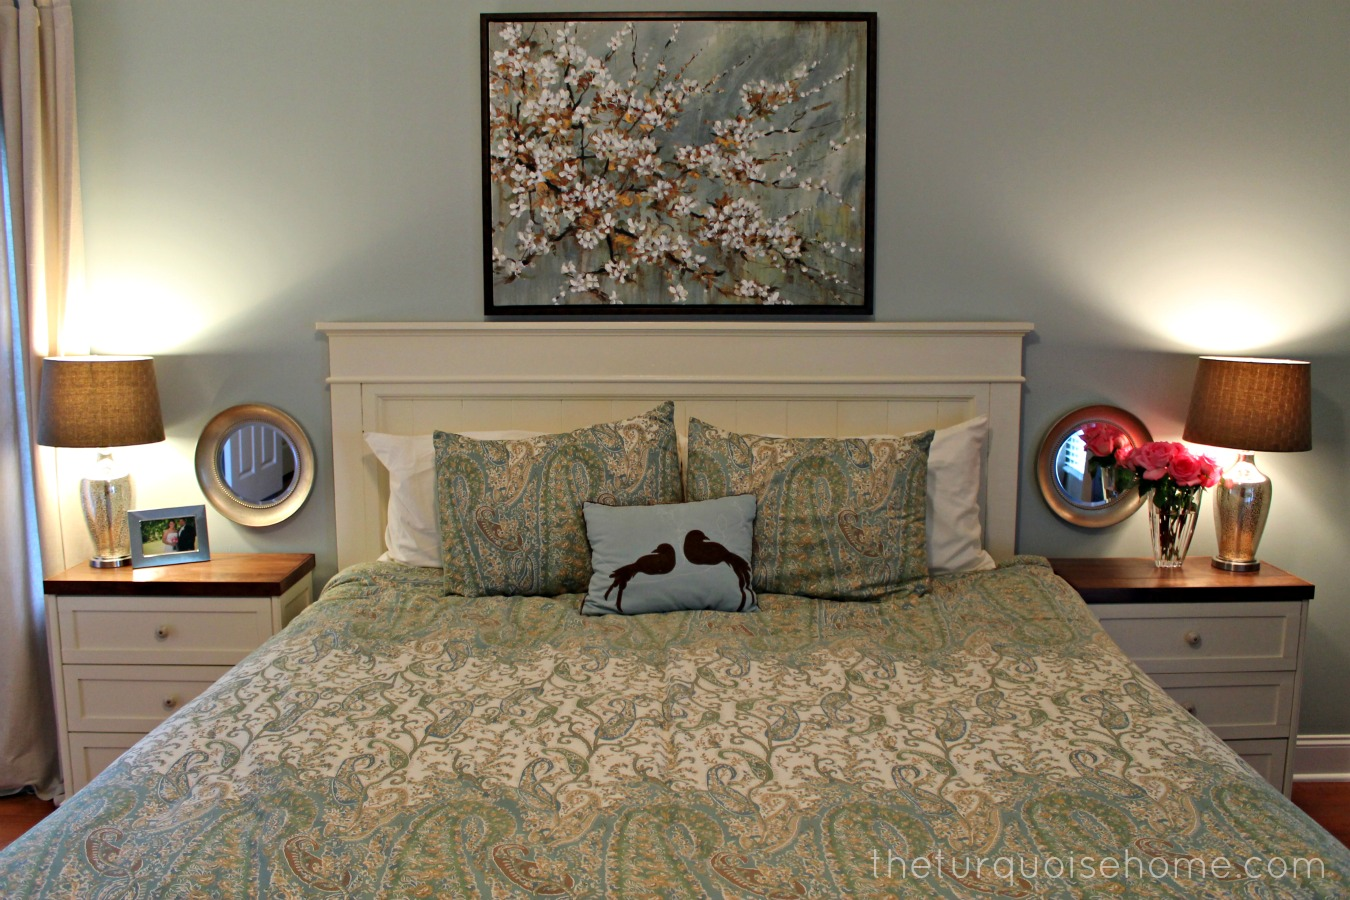 Master Bedroom Headboard Ideas Delectable Diy Headboard Master Bedroom Update  The Turquoise Home Design Inspiration